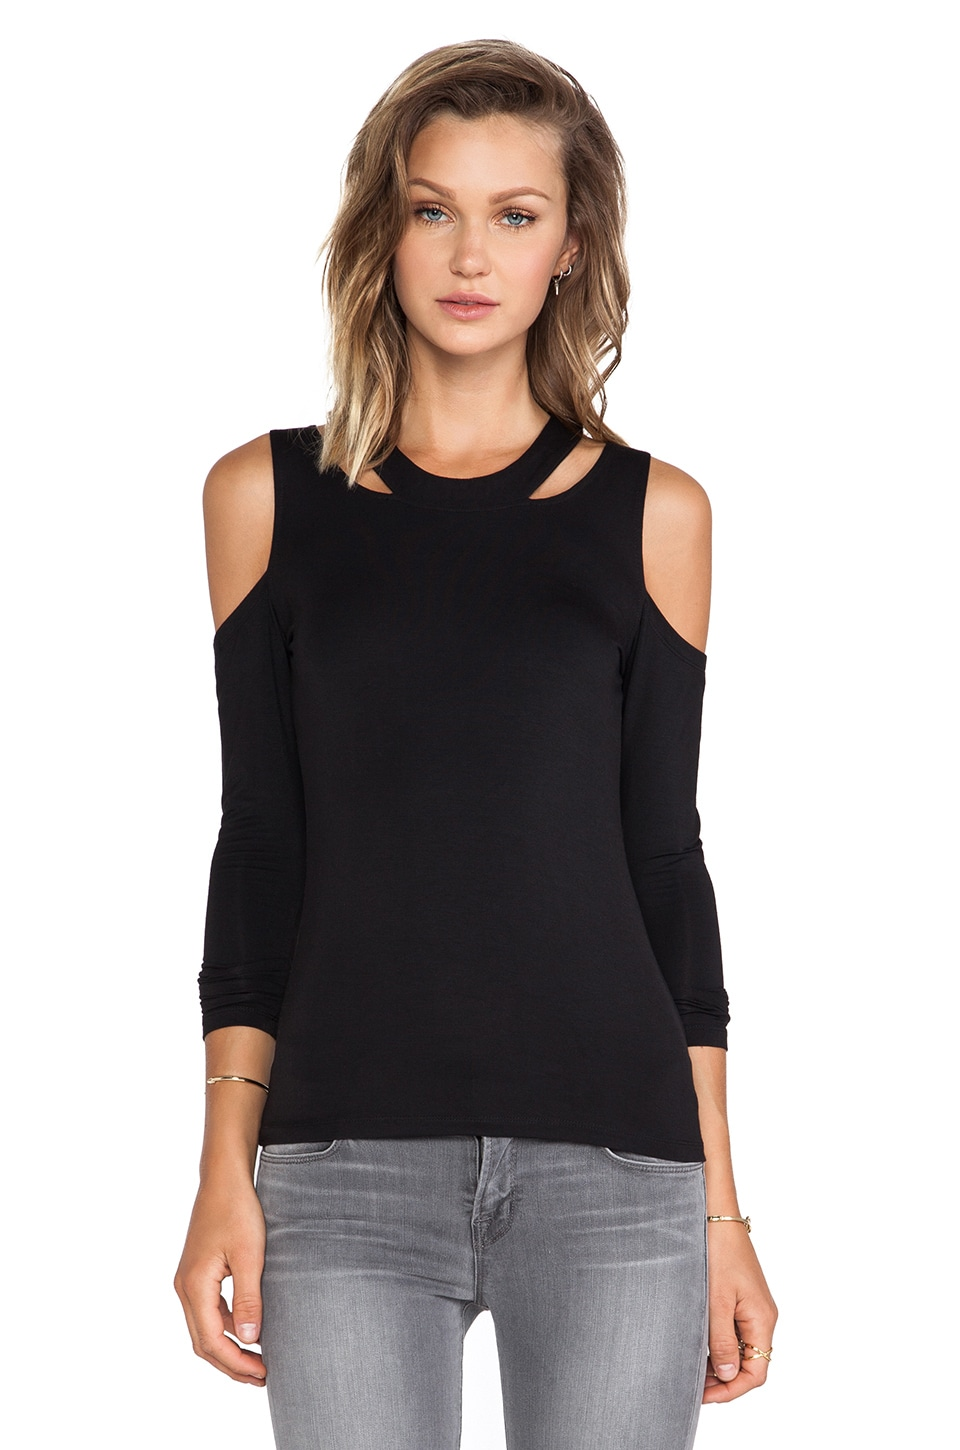 Lovers + Friends Late Night Craving Top in Black